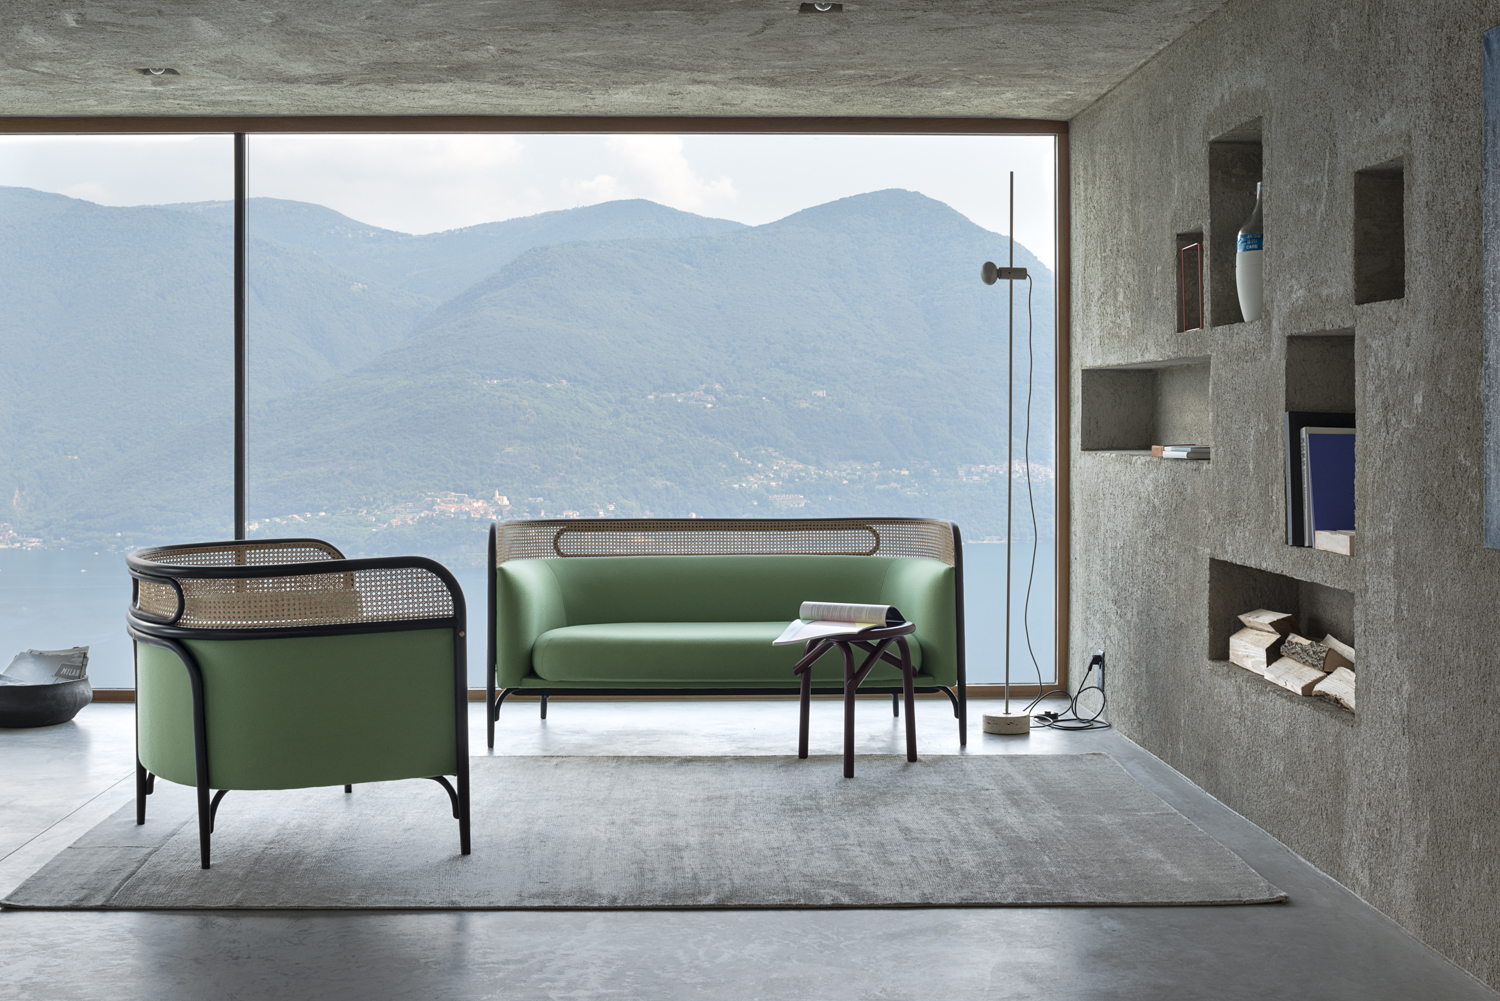 Targa Lounge and sofa By GamFratesi for Gebrüder Thonet Vienna | Flodeau.com